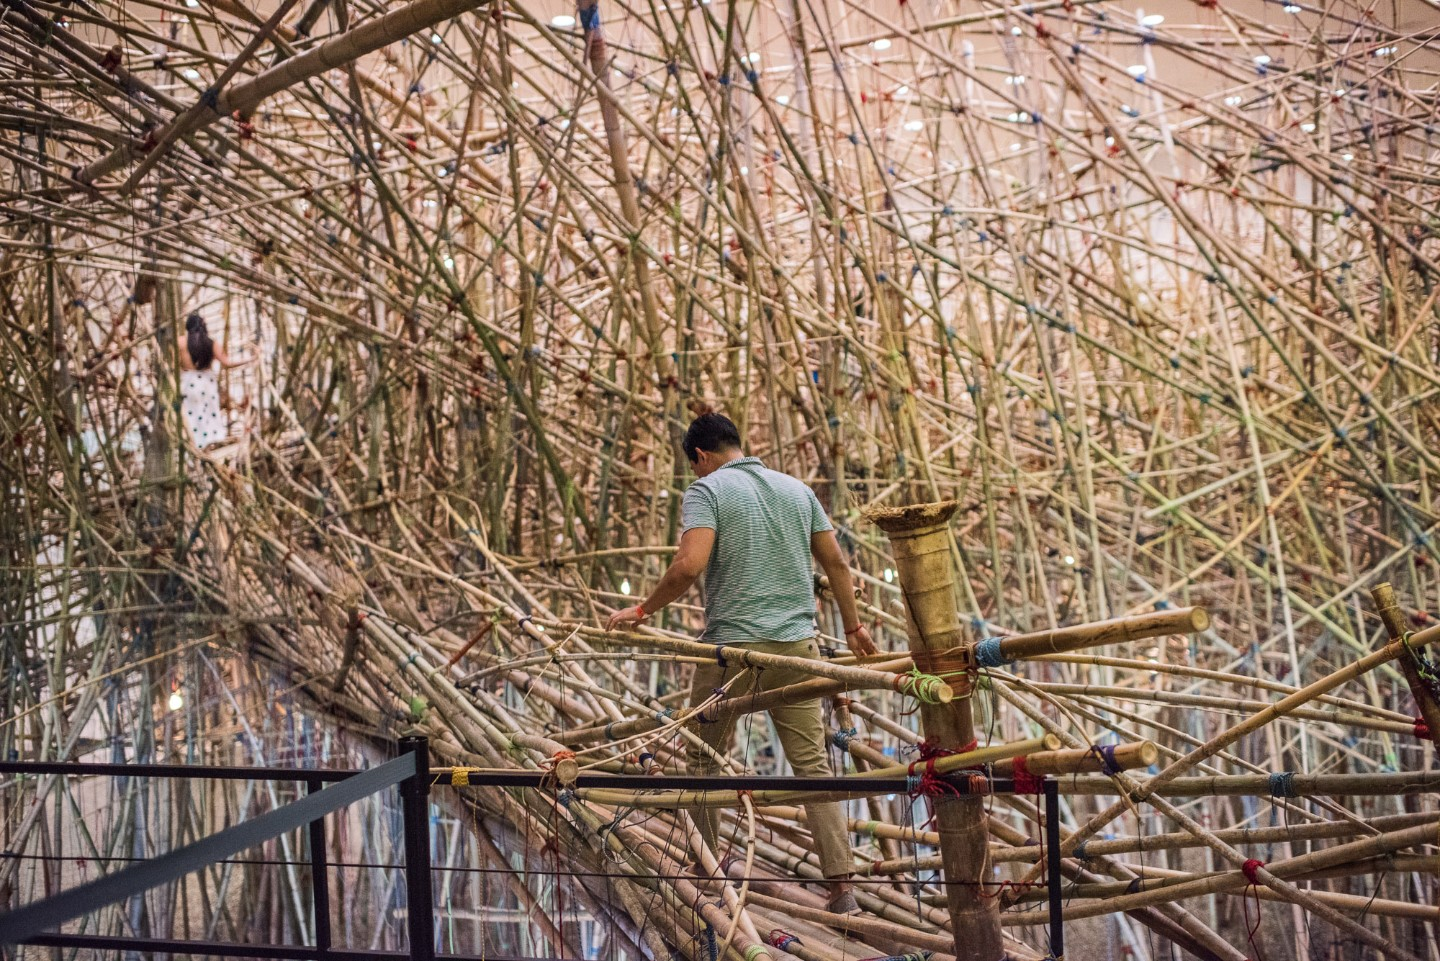 Mike + Doug Starn: Big Bambú - adult on bridge into pathway